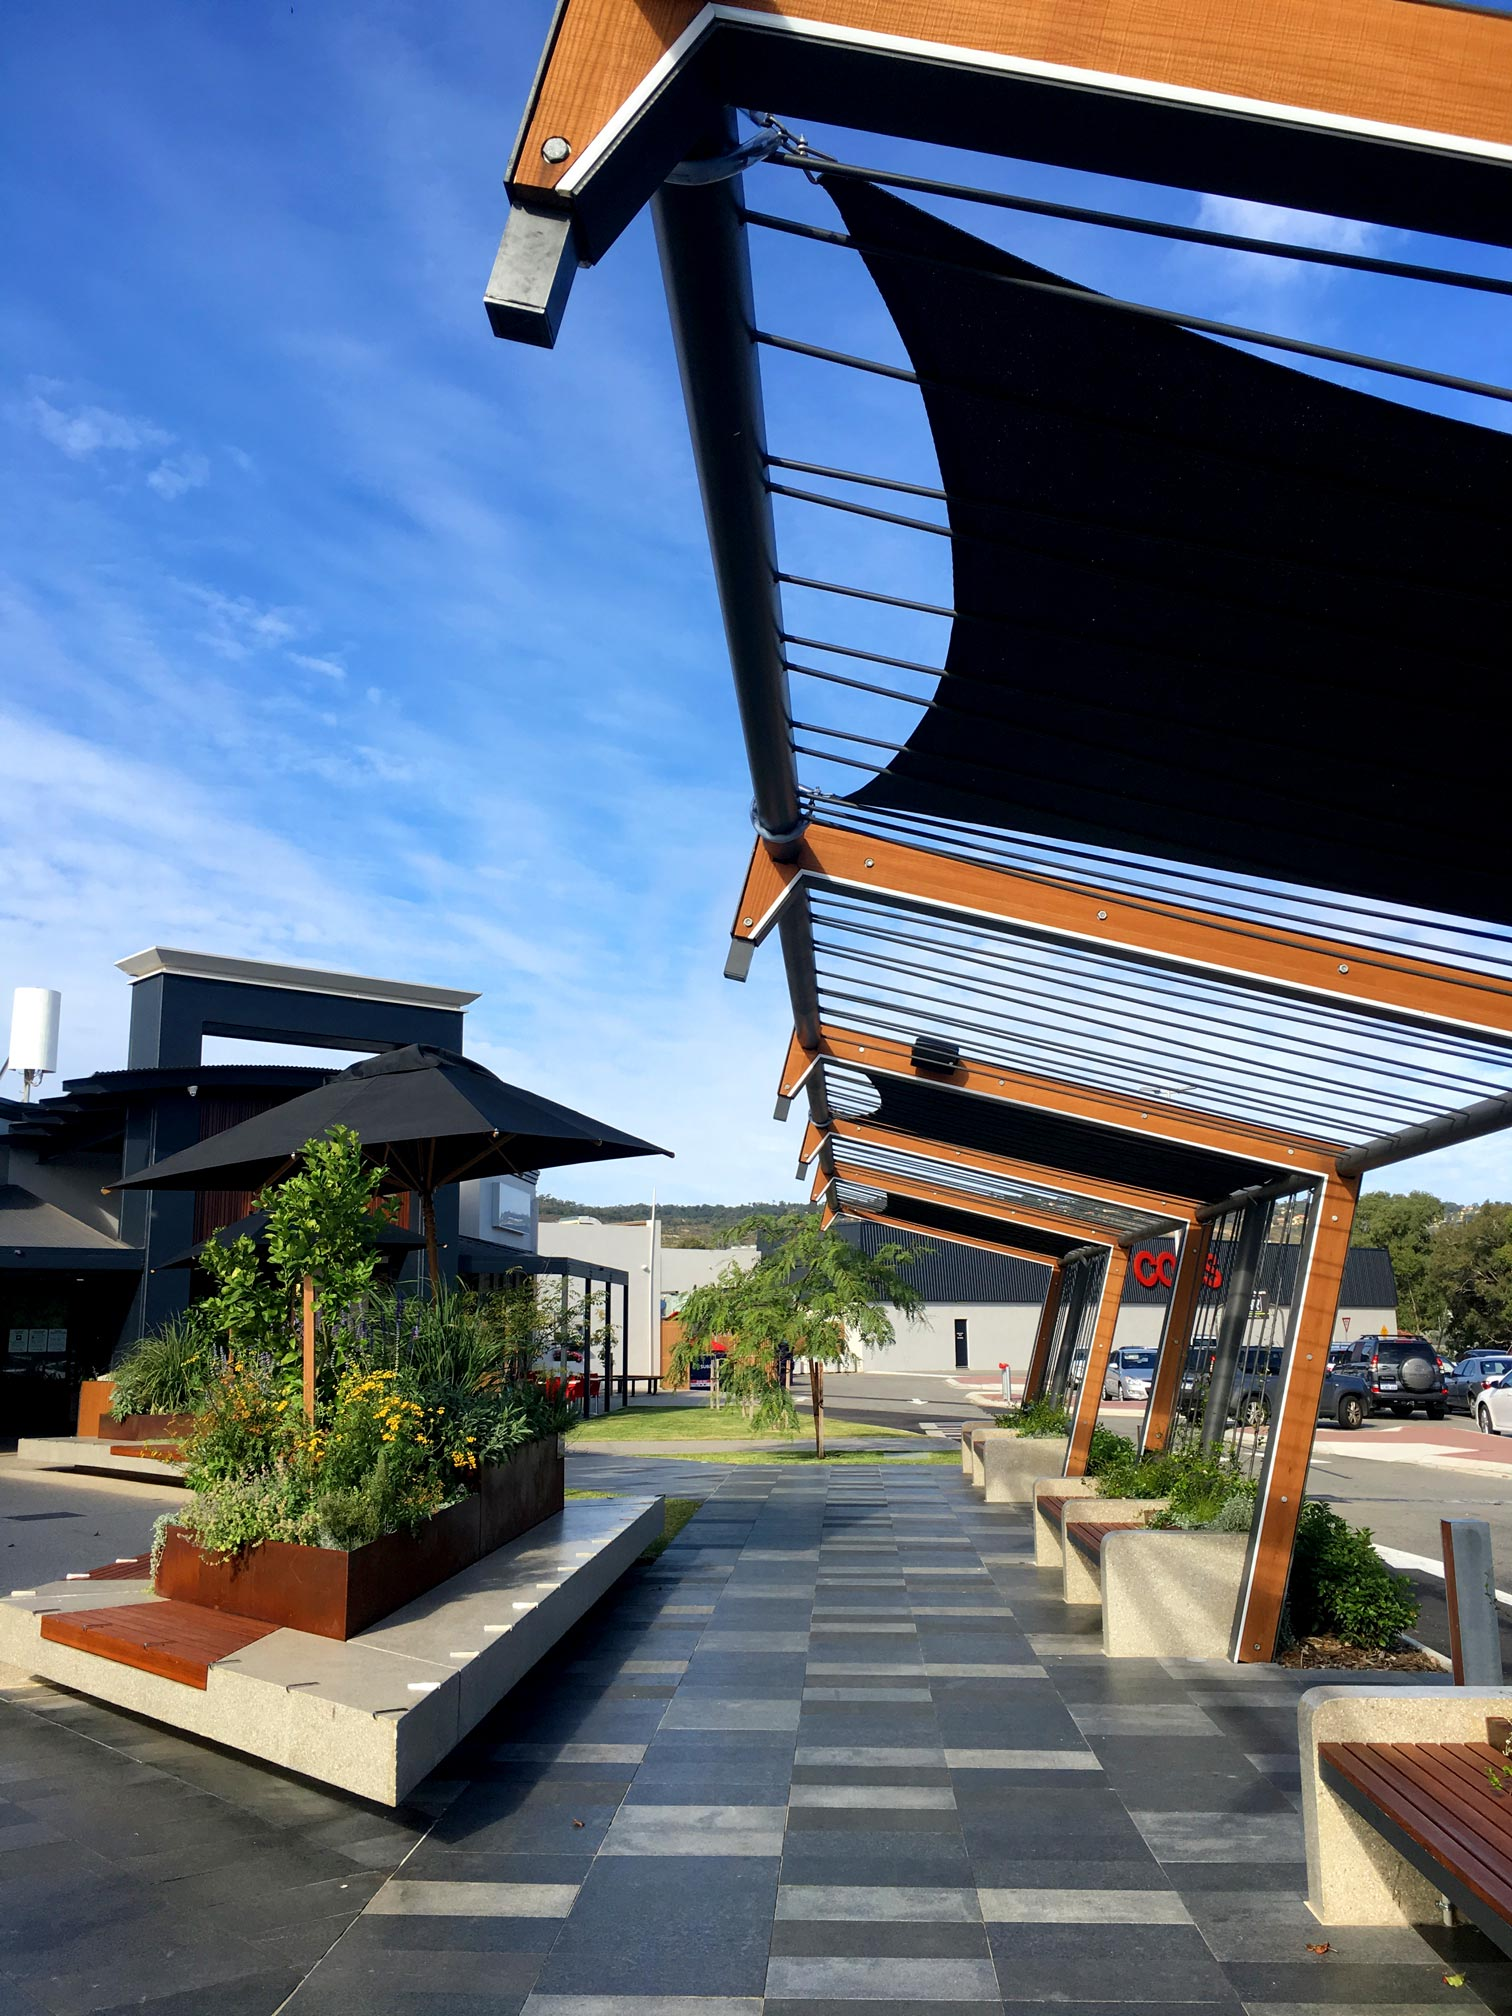 shaded angled timber & steel trellis next to footpath to the entrance of Forrestfield Forum Shopping Centre